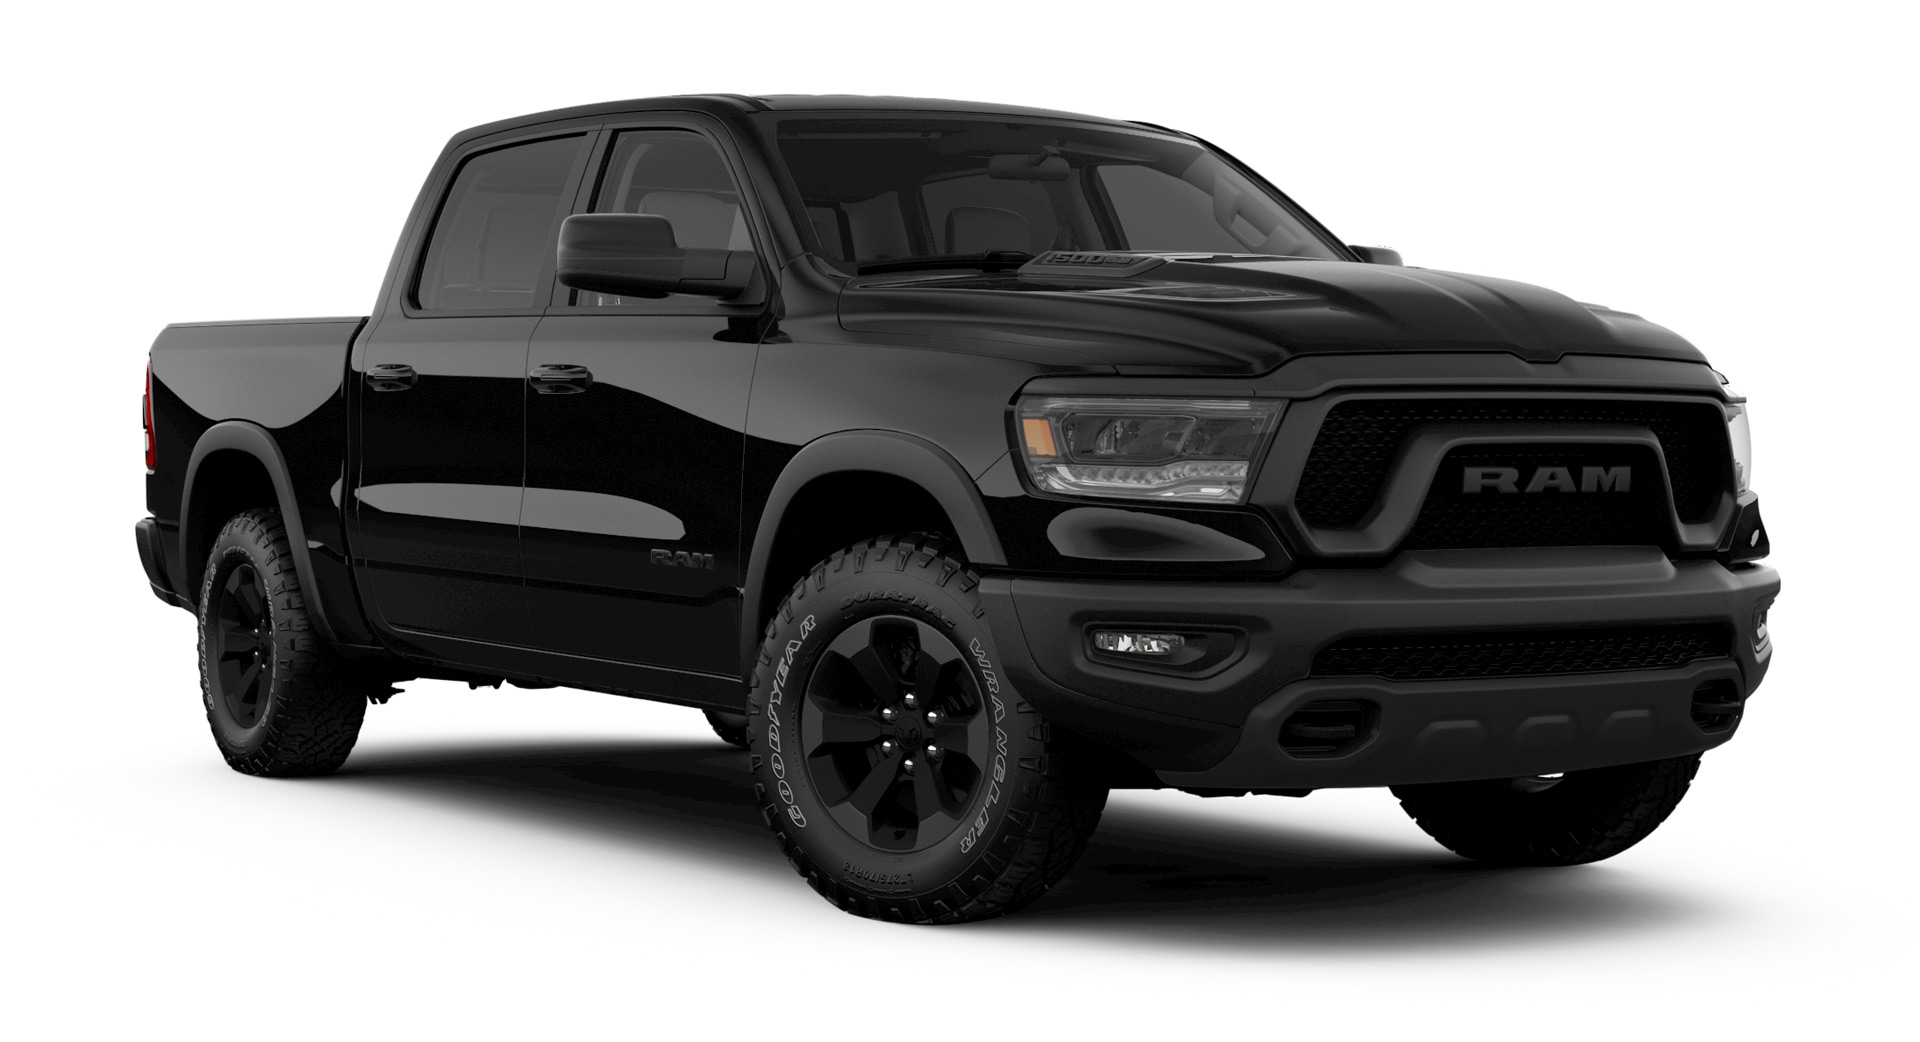 2020 Ram Rebel Goes Sinister With Black Appearance Pack